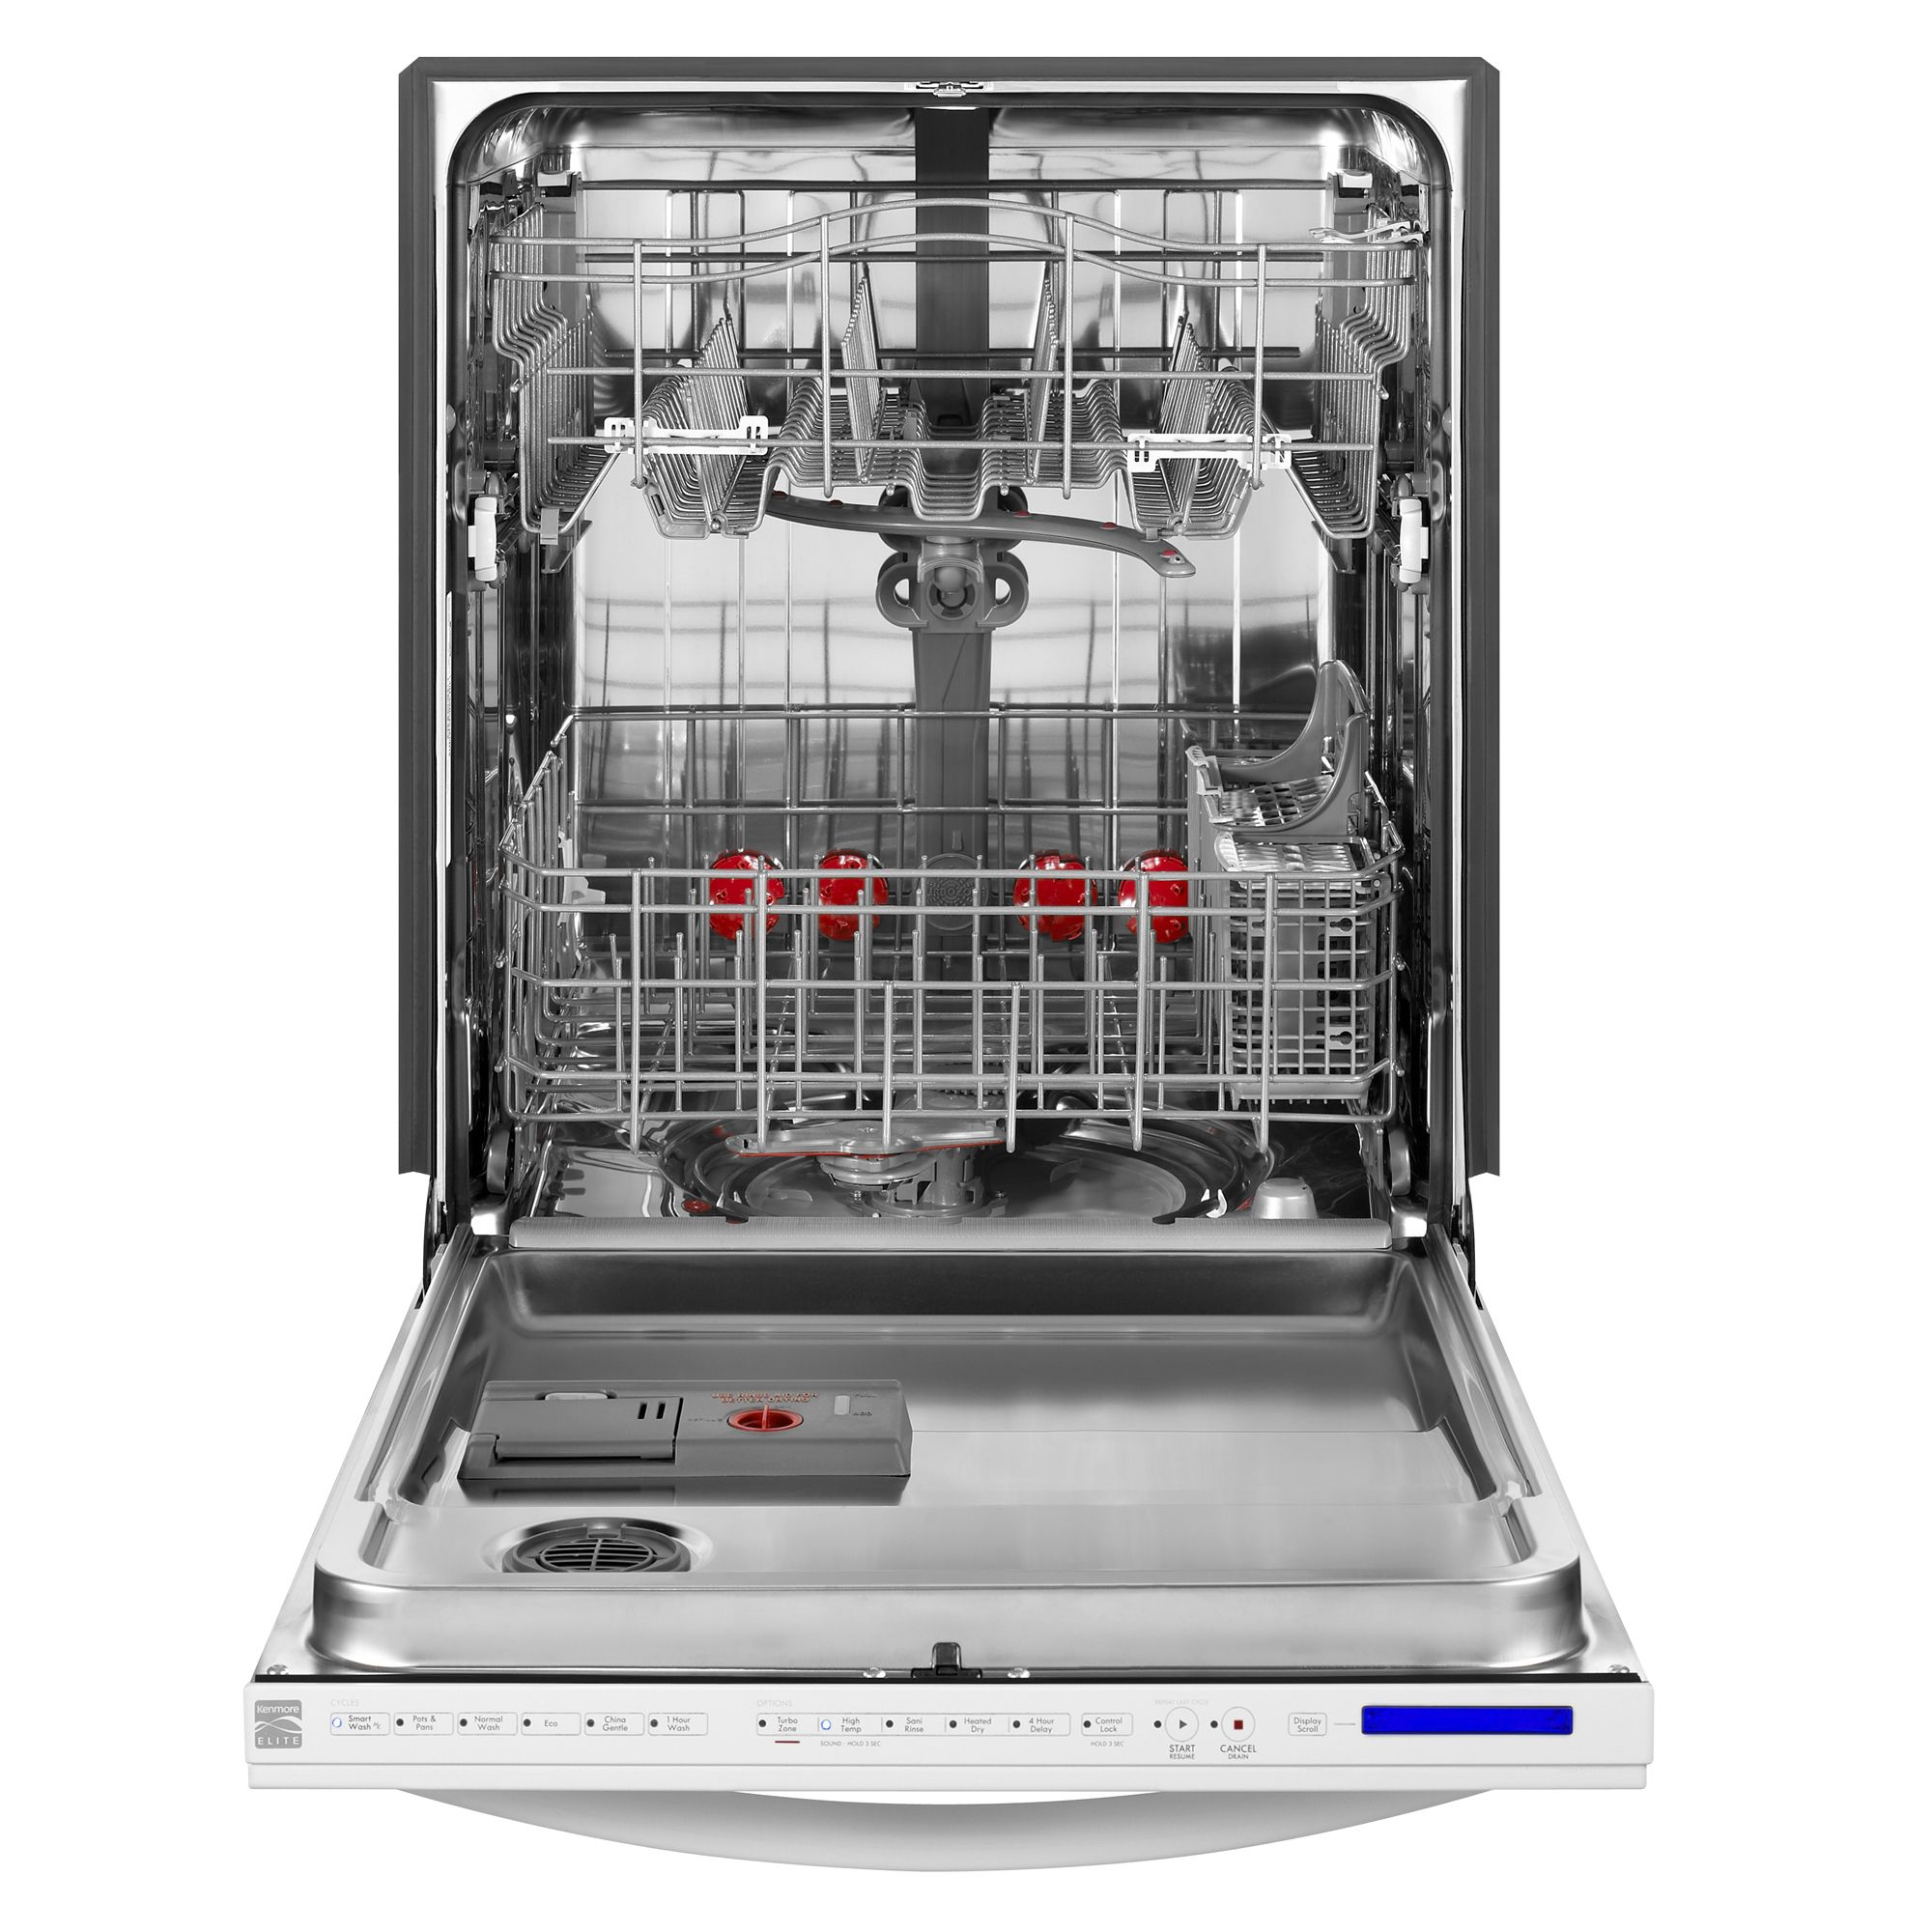 "Kenmore Elite 24"" Elite Dishwasher 360 Degree PowerWash - White"